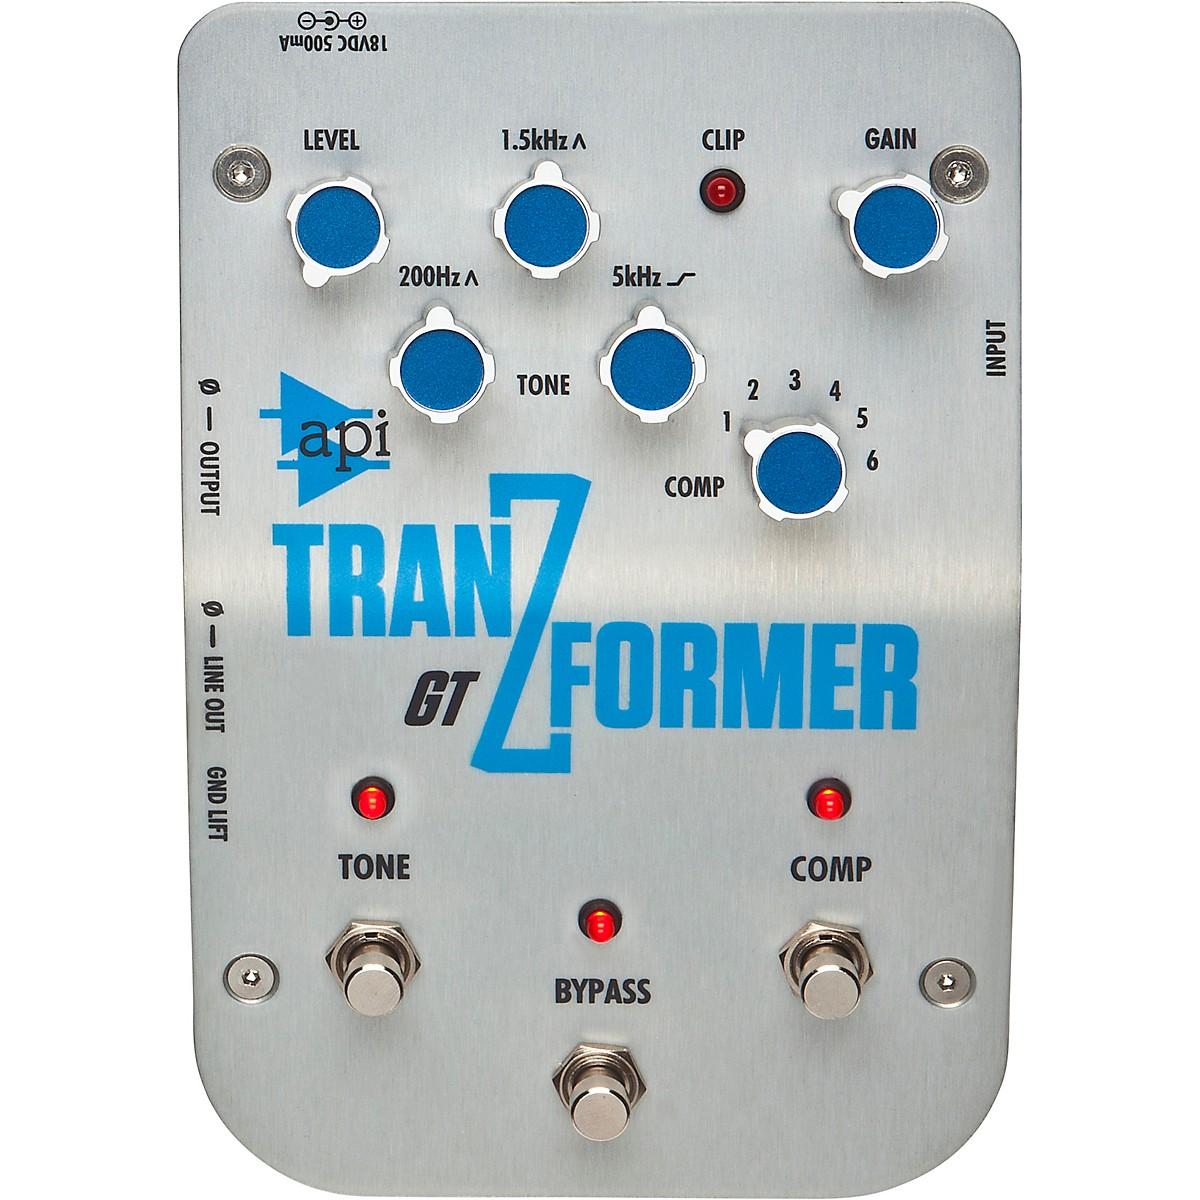 API TranZformer GT Guitar Effects Pedal